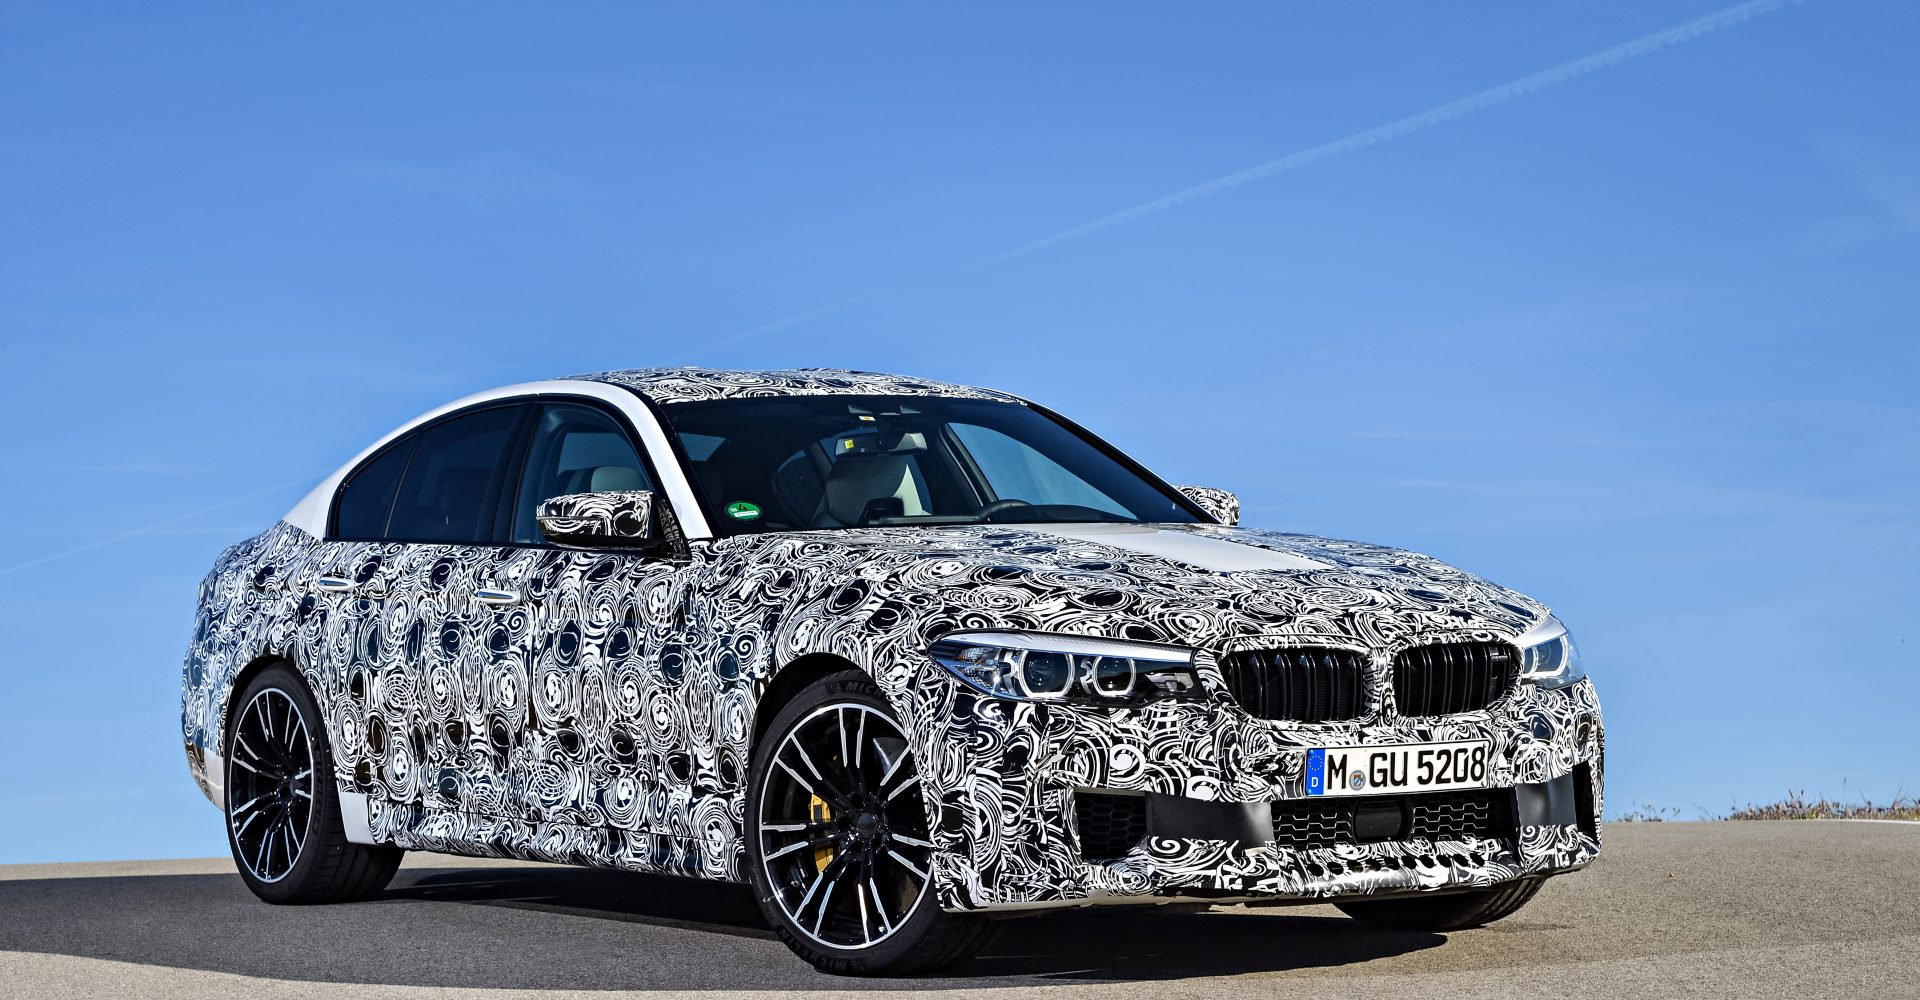 Here's what we know about the new BMW M5